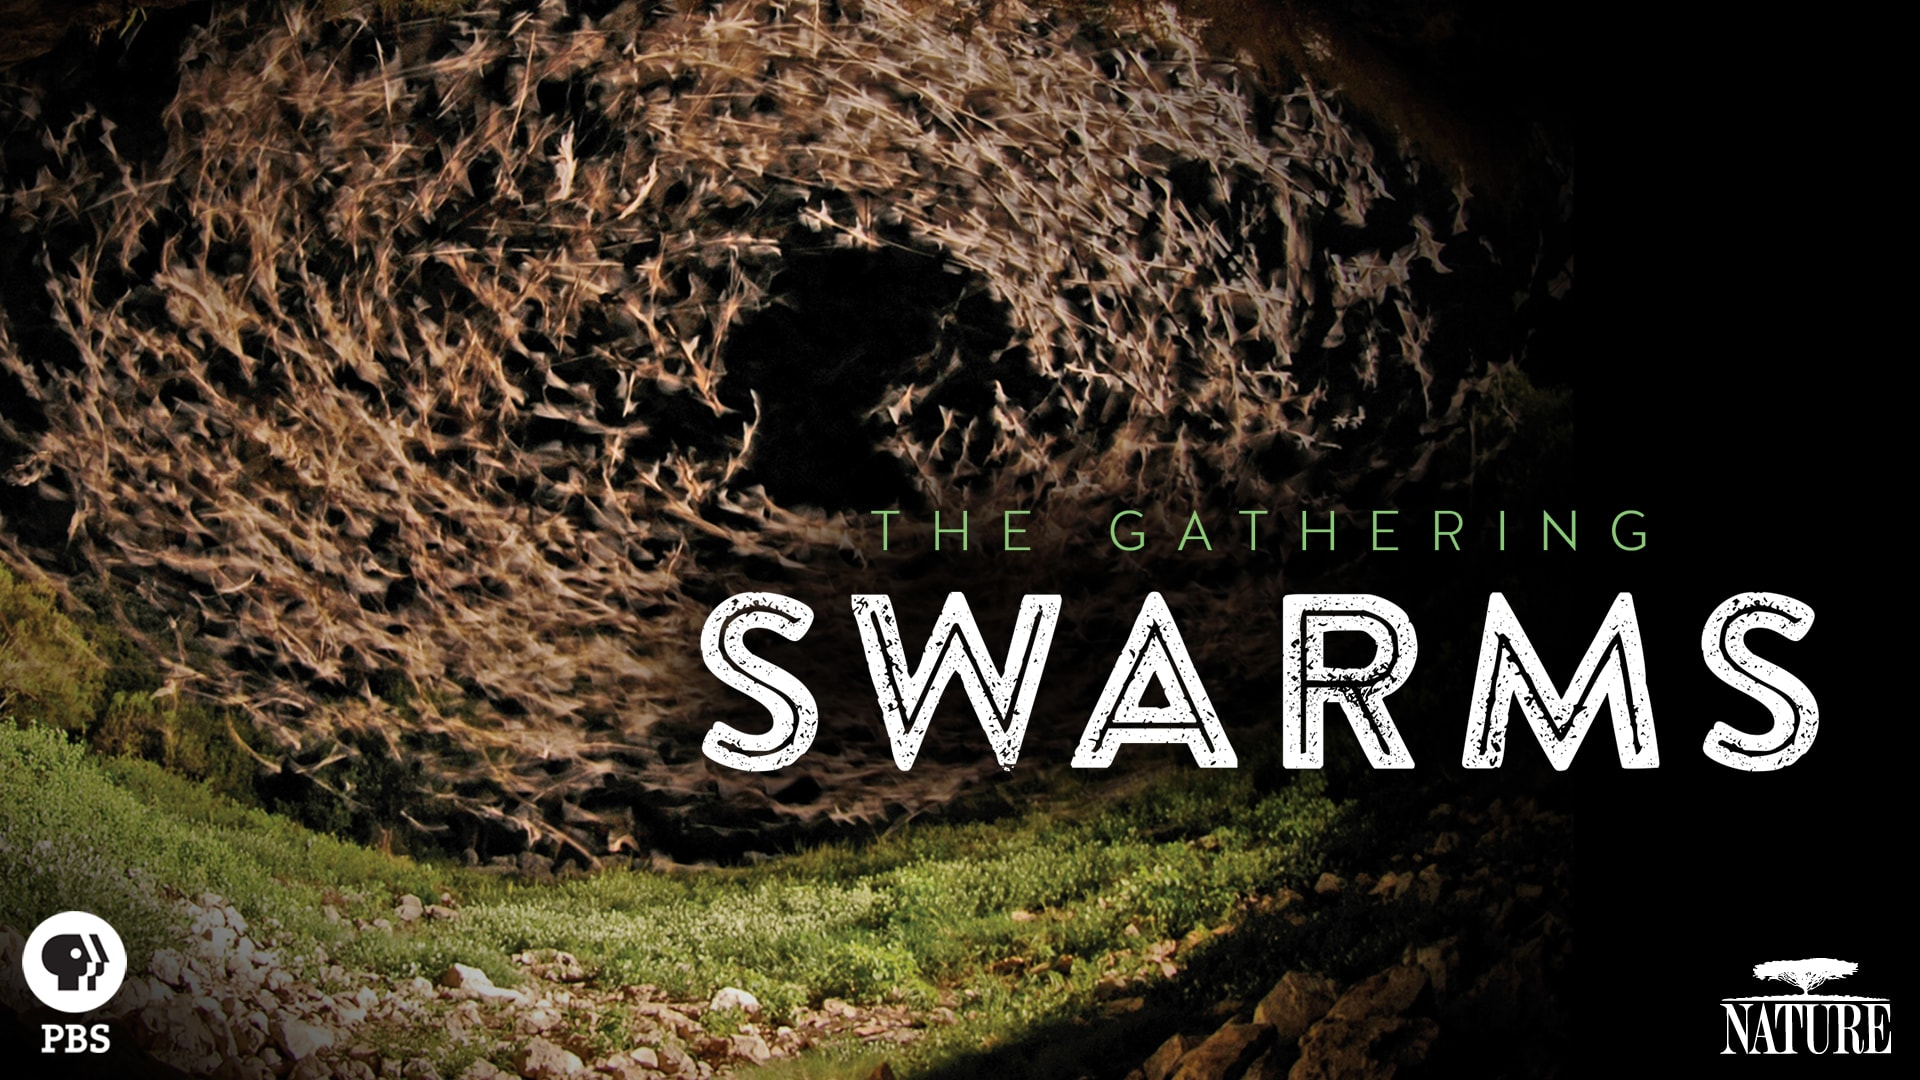 The Gathering Swarms